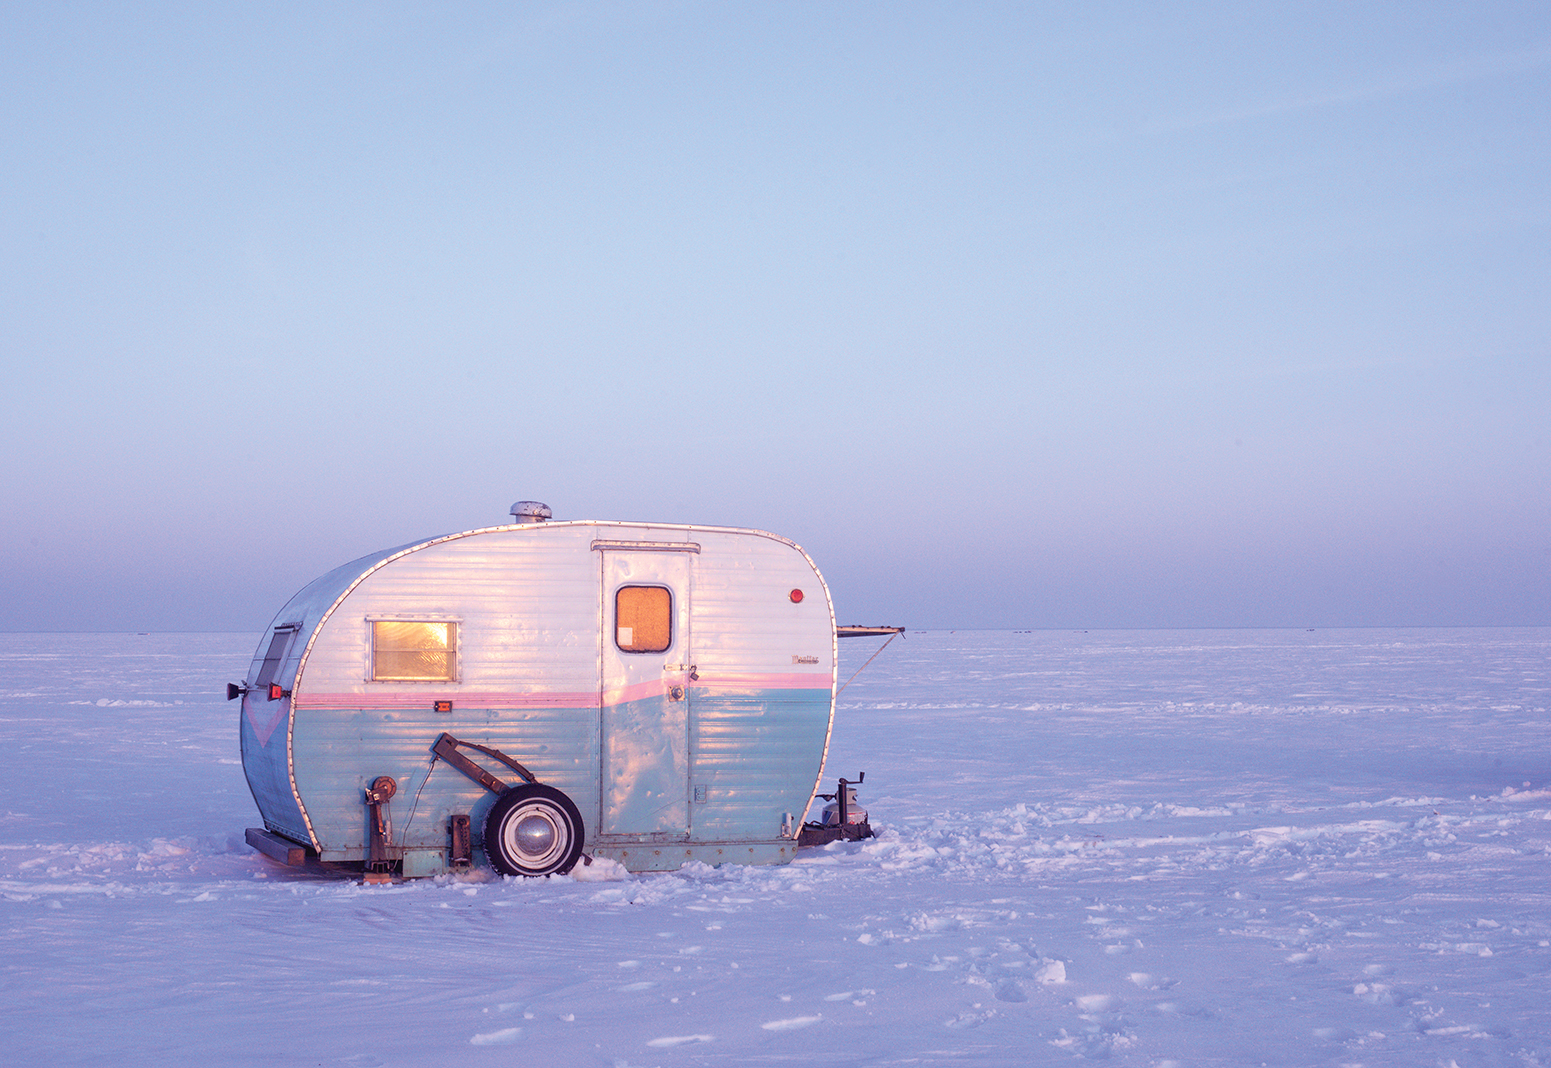 Every winter, Jenny Anderson brings her fishing camper, named Lil Hotdish, out onto the ice